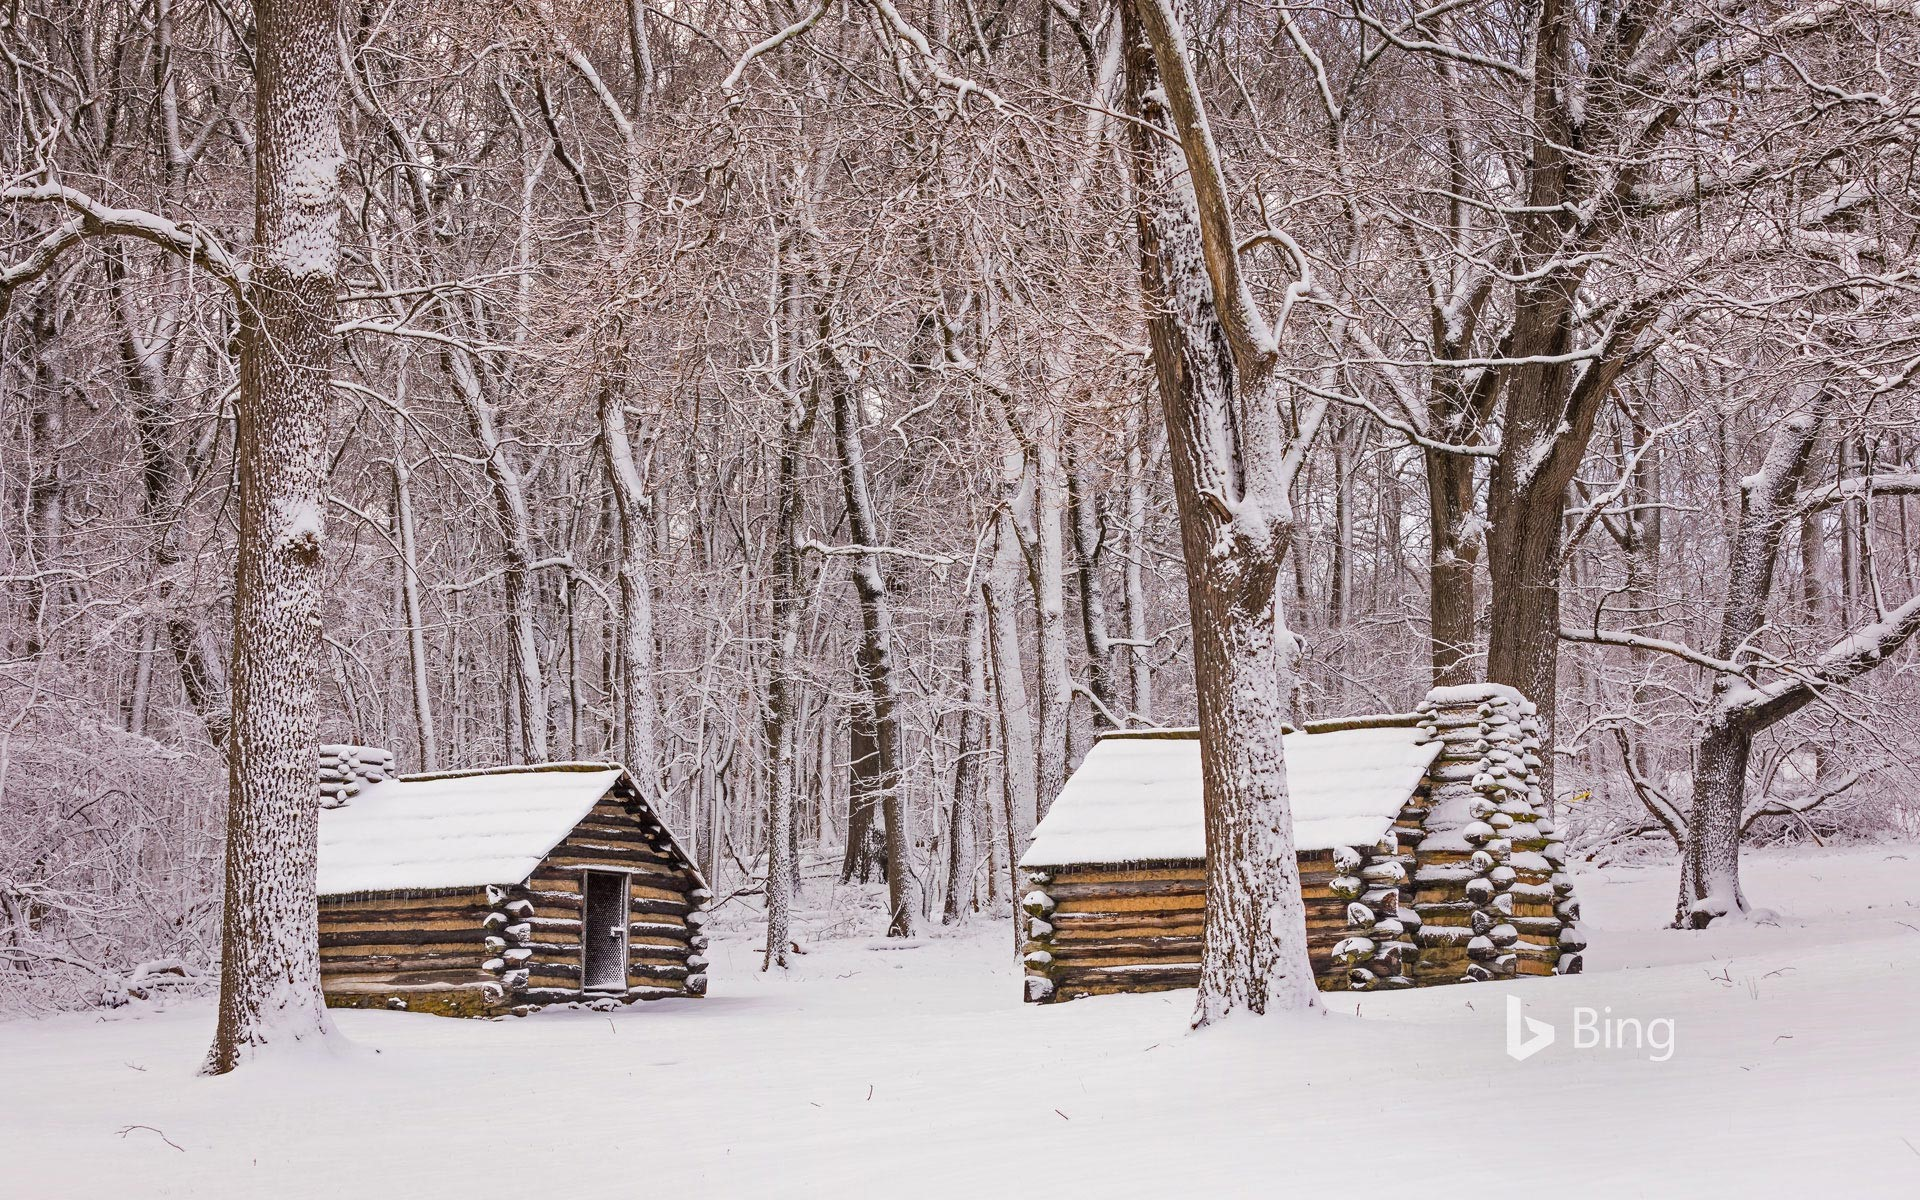 Cabins in Valley Forge National Historical Park, Pennsylvania